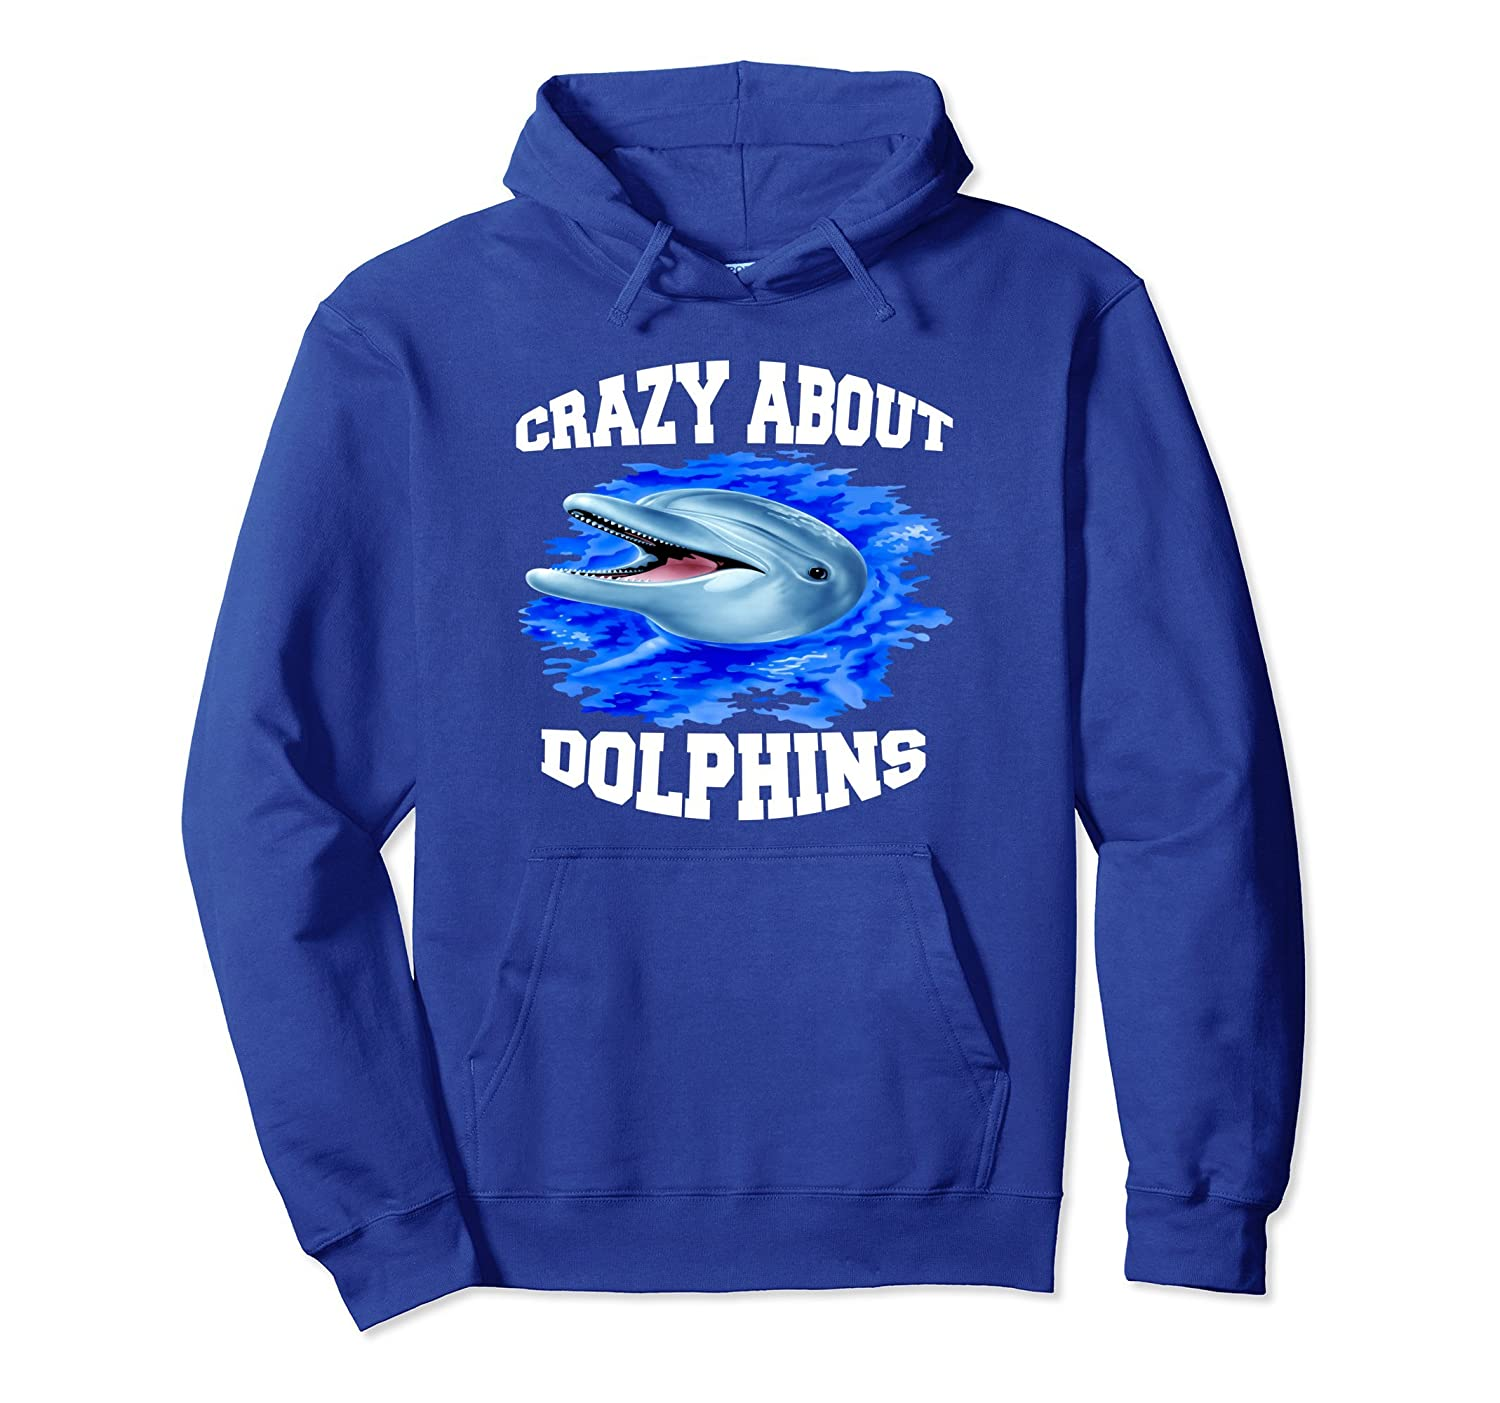 Adorable, Dolphin Pullover Hoodie Gift Crazy About Dolphins.-mt